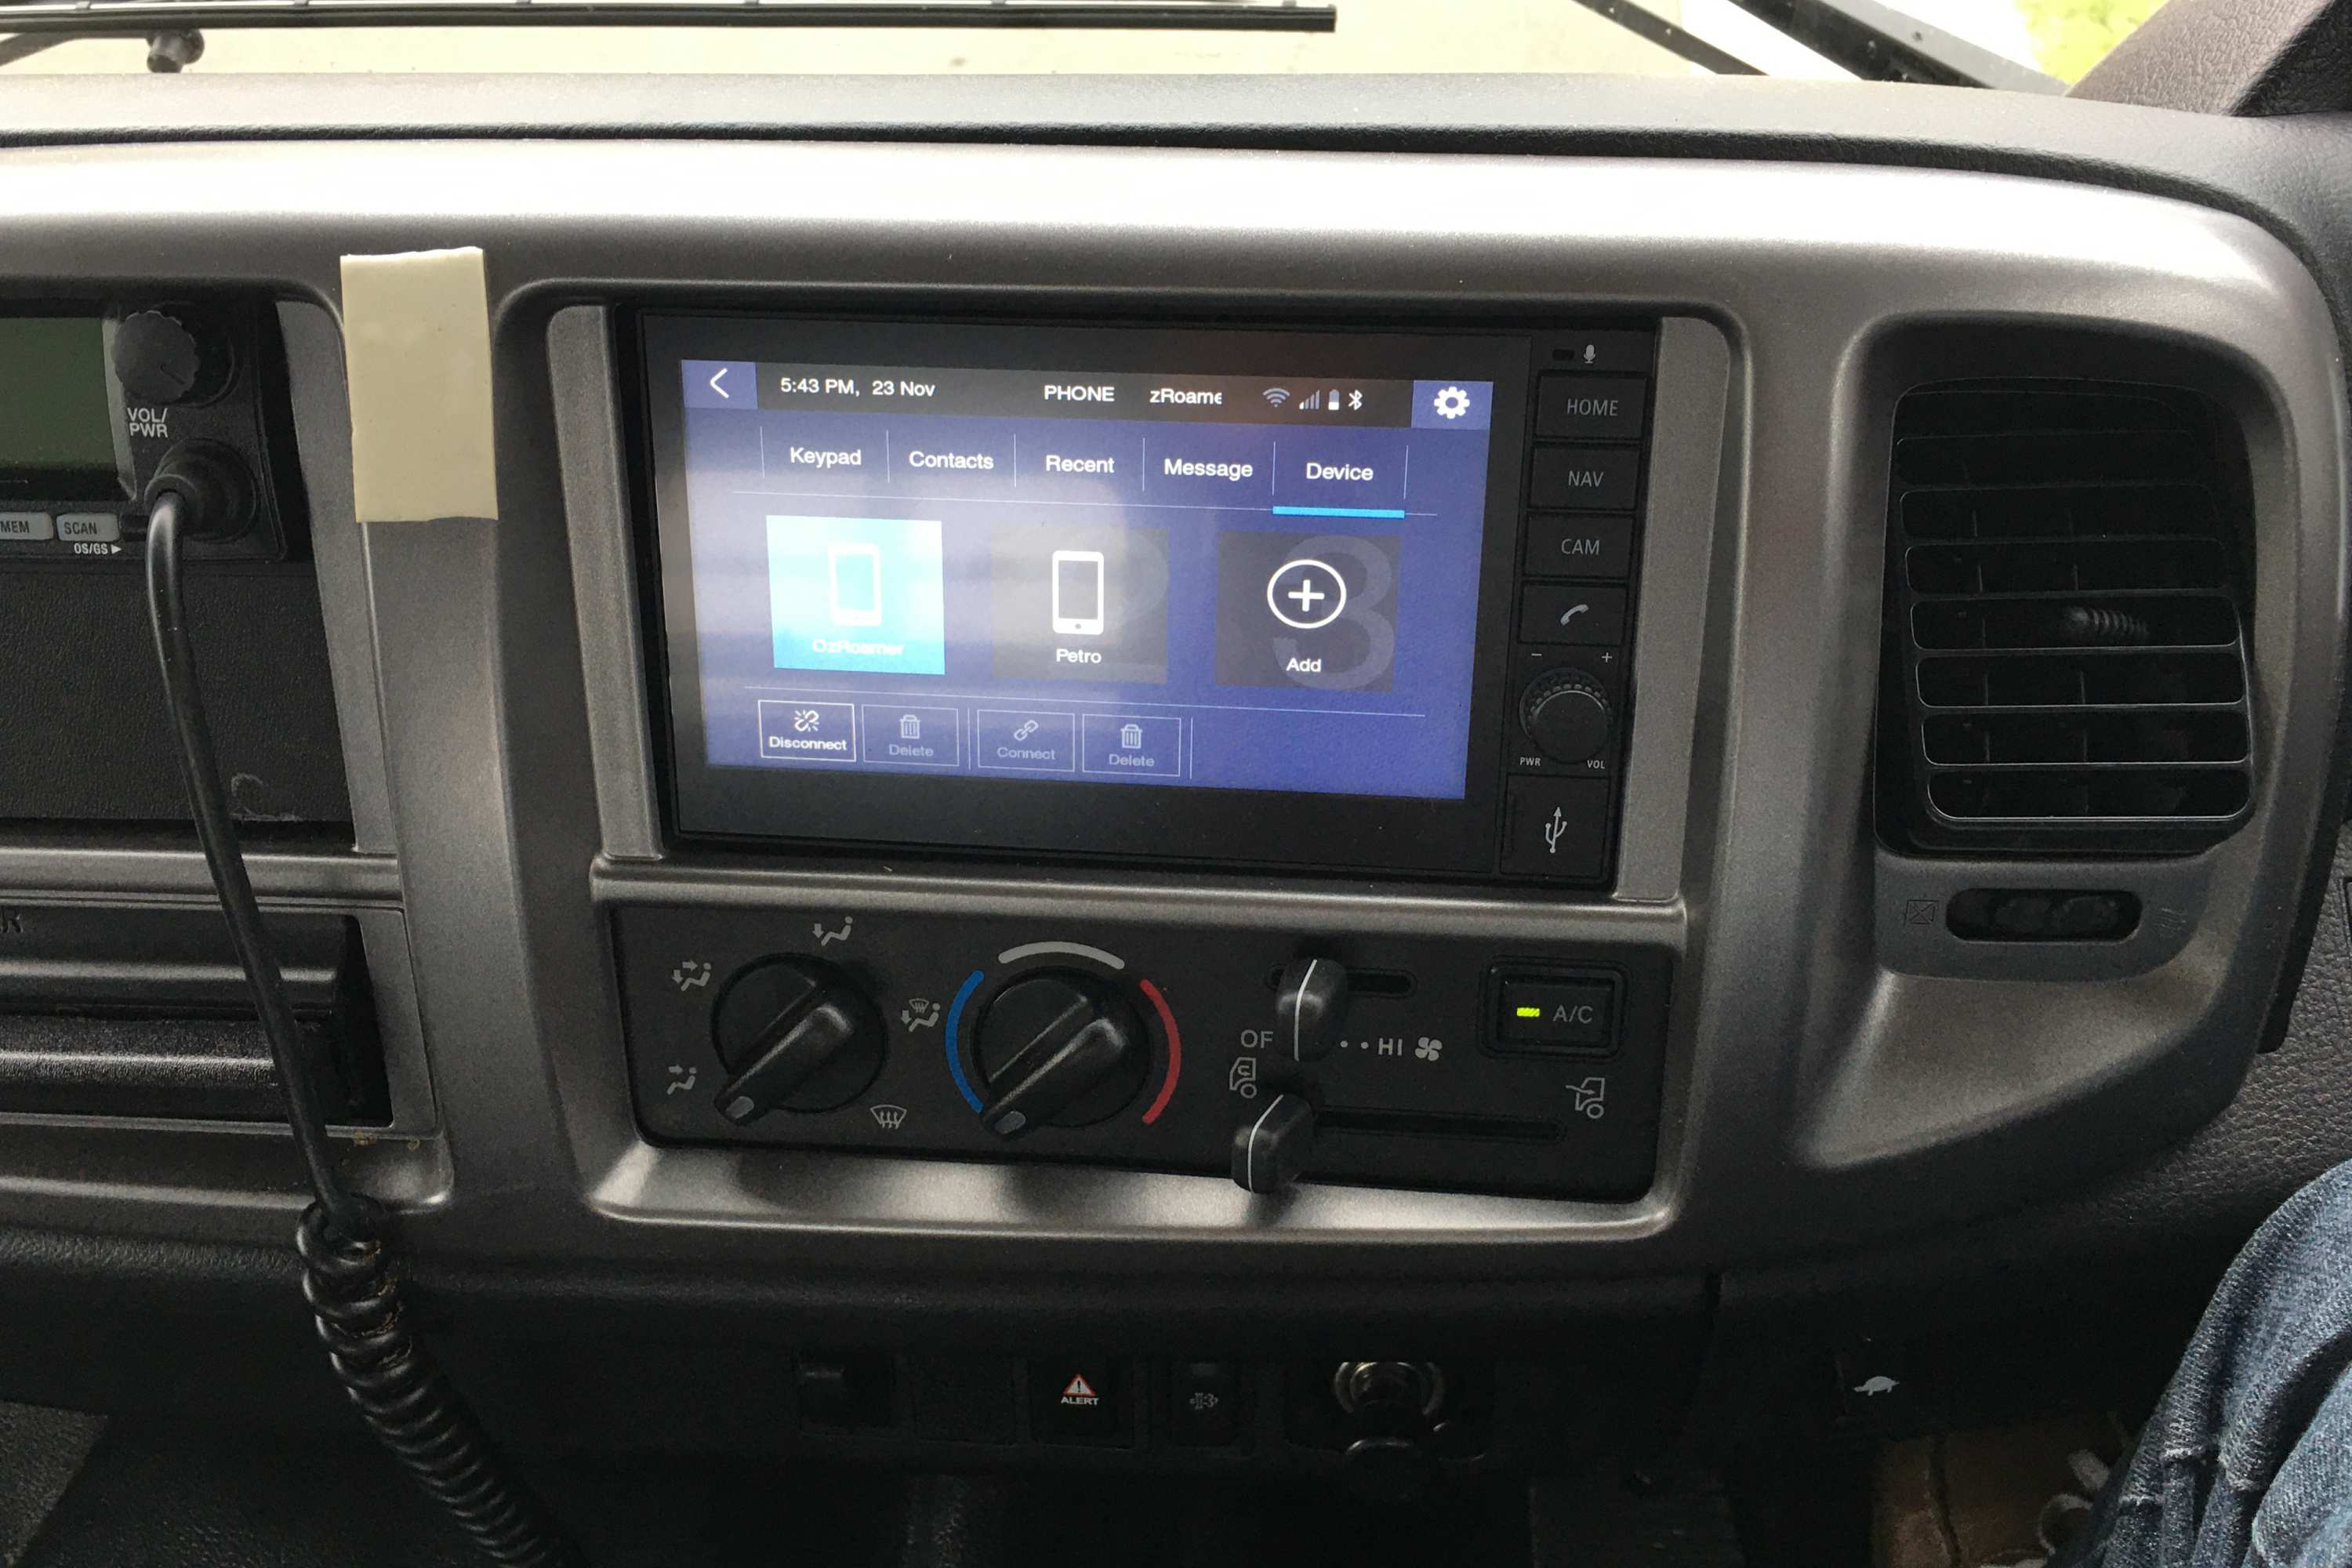 HINO 500 Series 1528 4X4 GT front dash